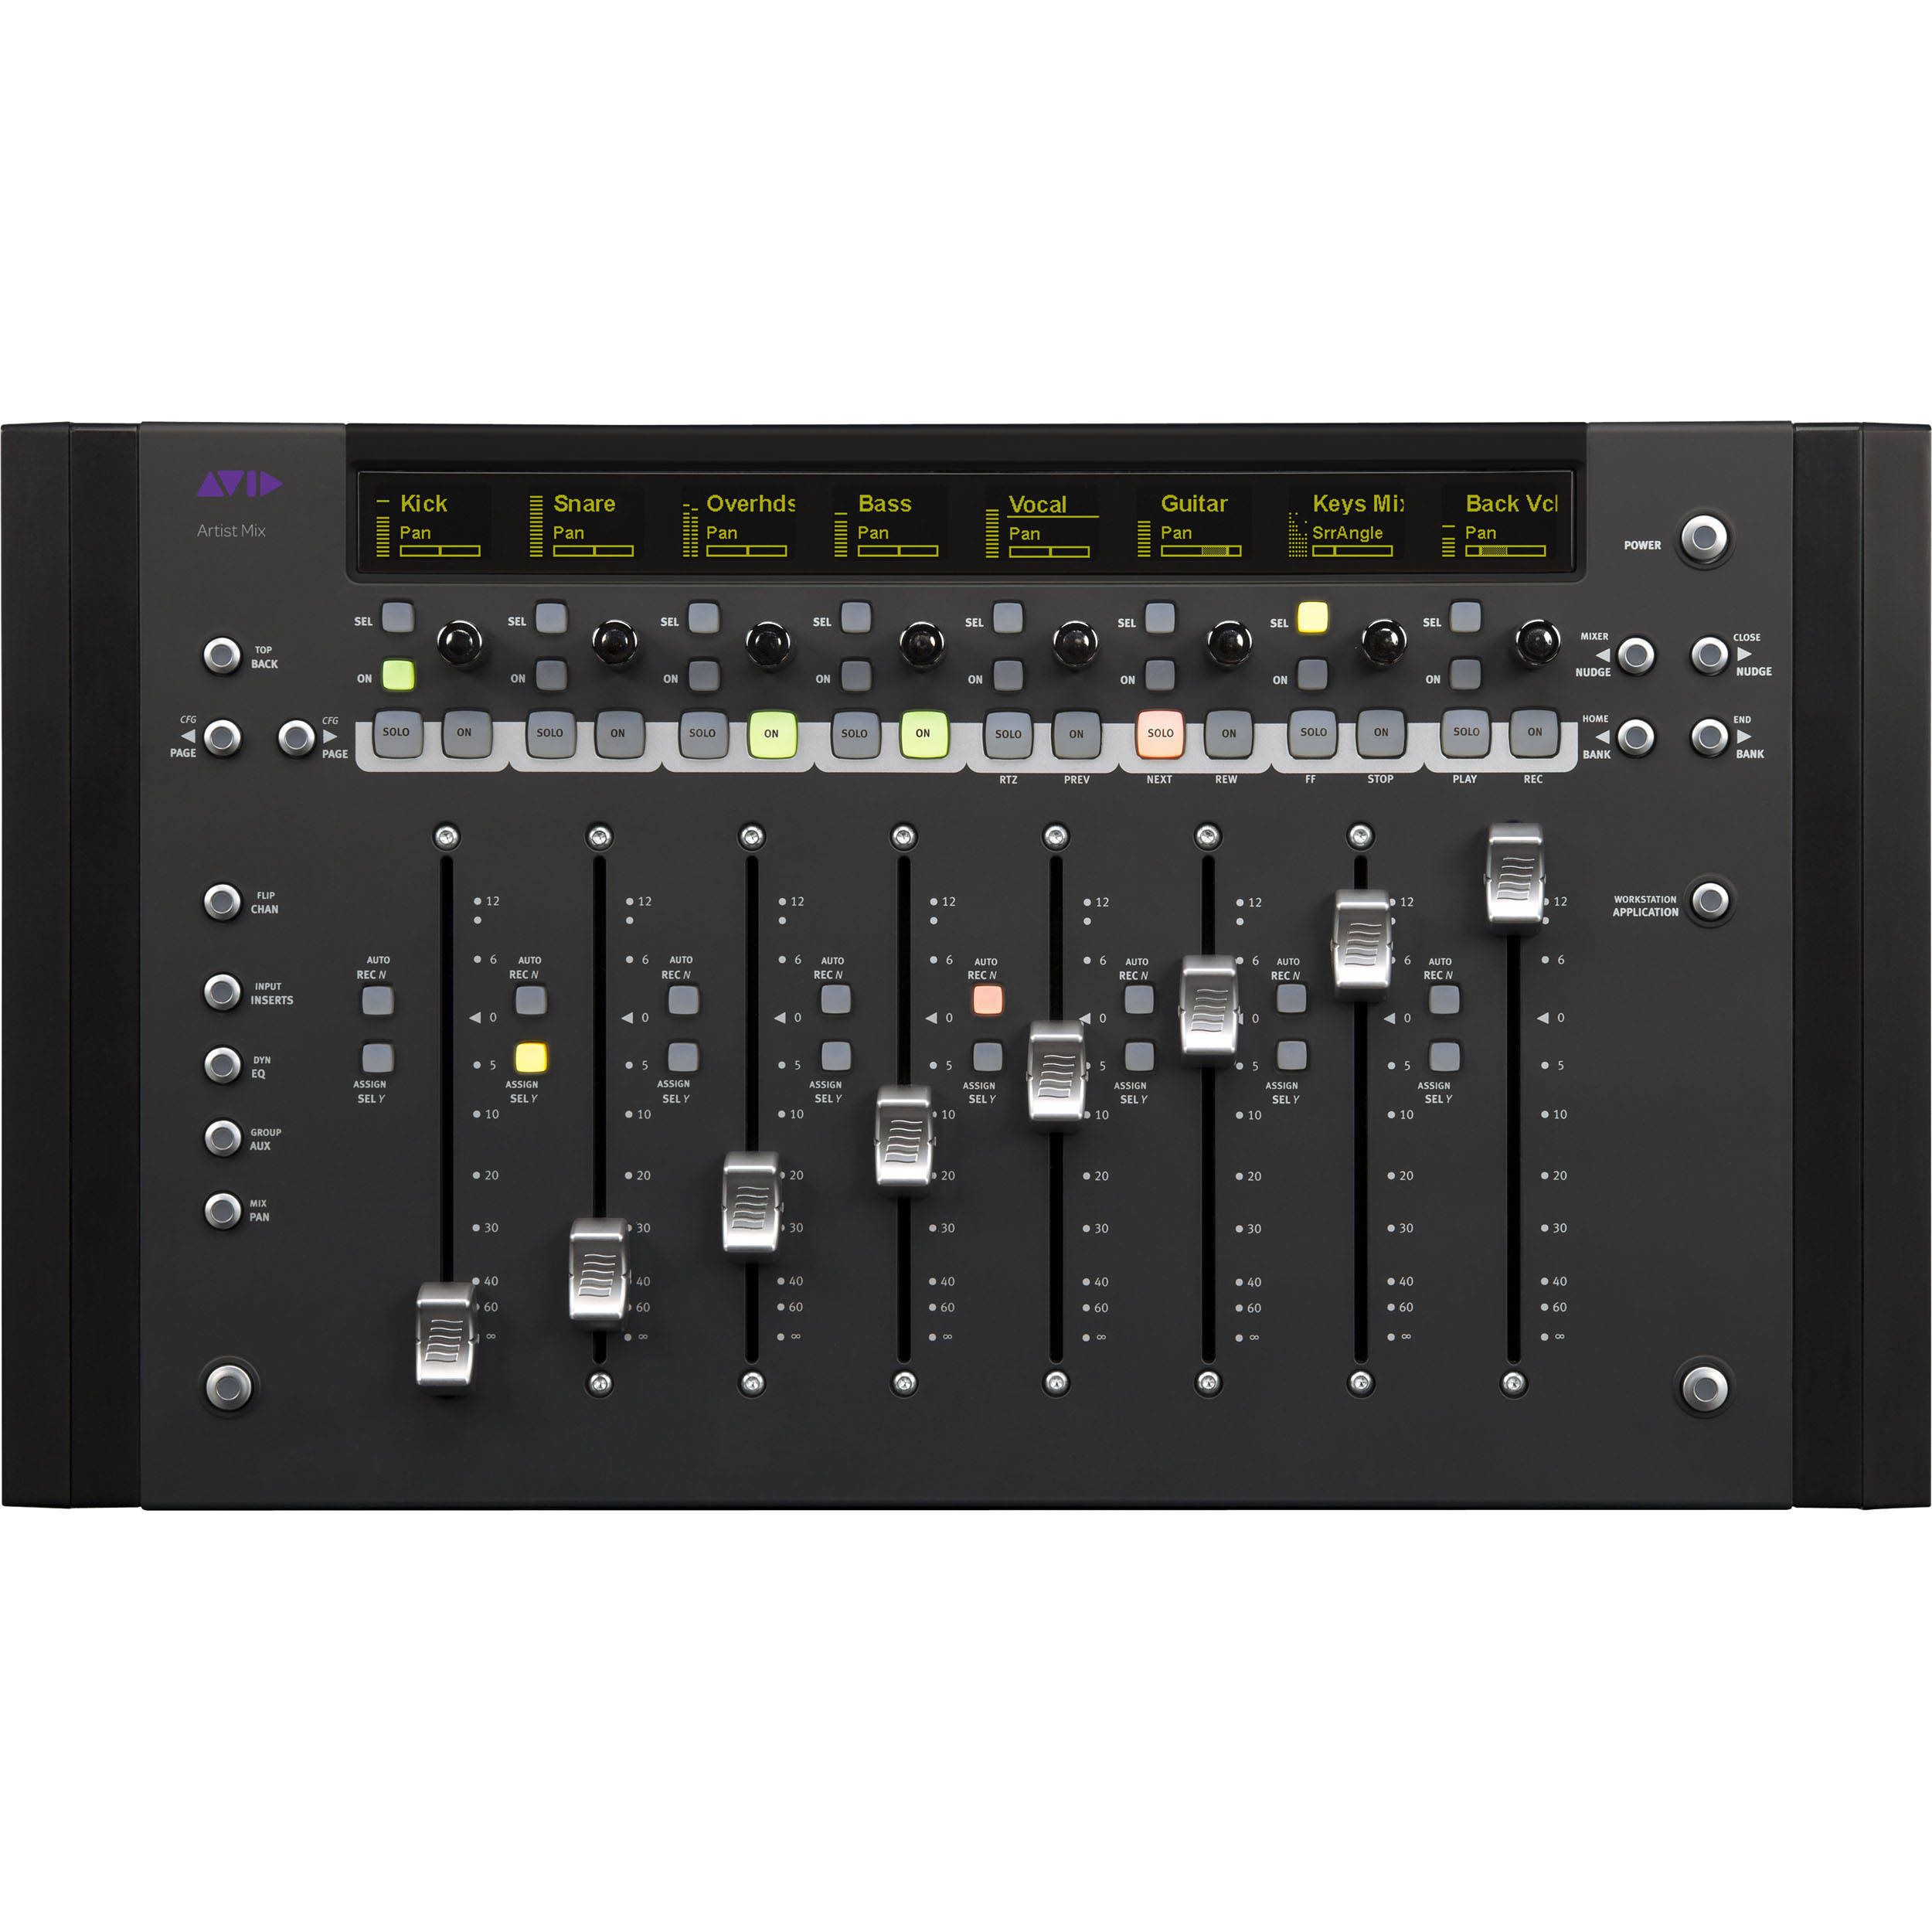 Avid Artist Mix Touch Sensitive Fader Control